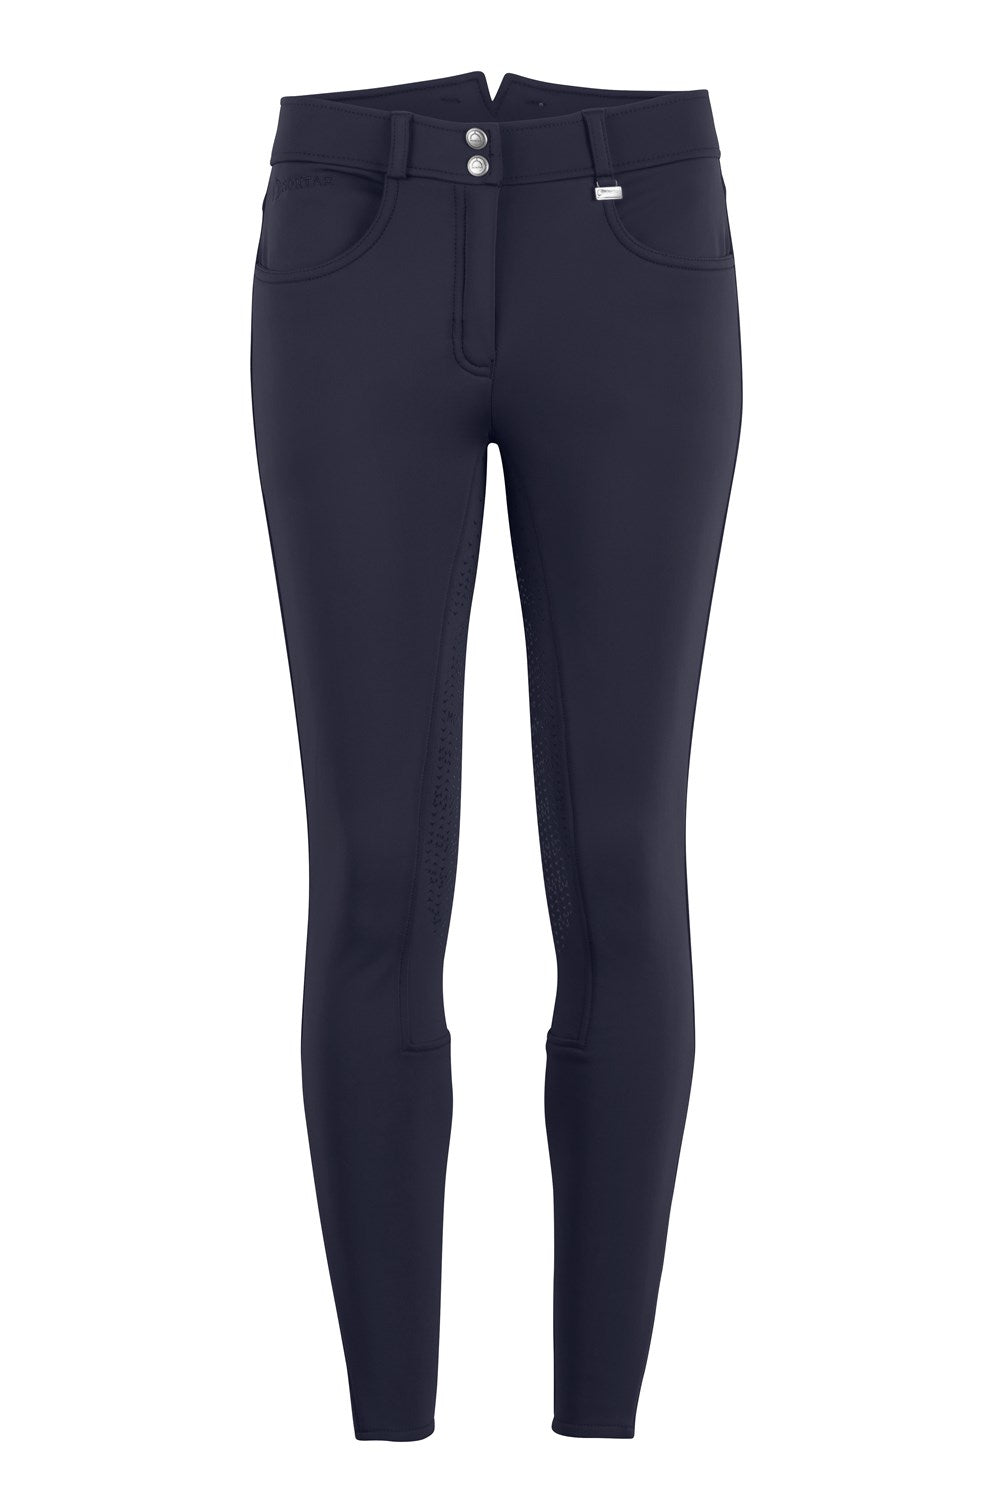 Montar Karly Winter Riding Breech - Navy - The Dressage Store